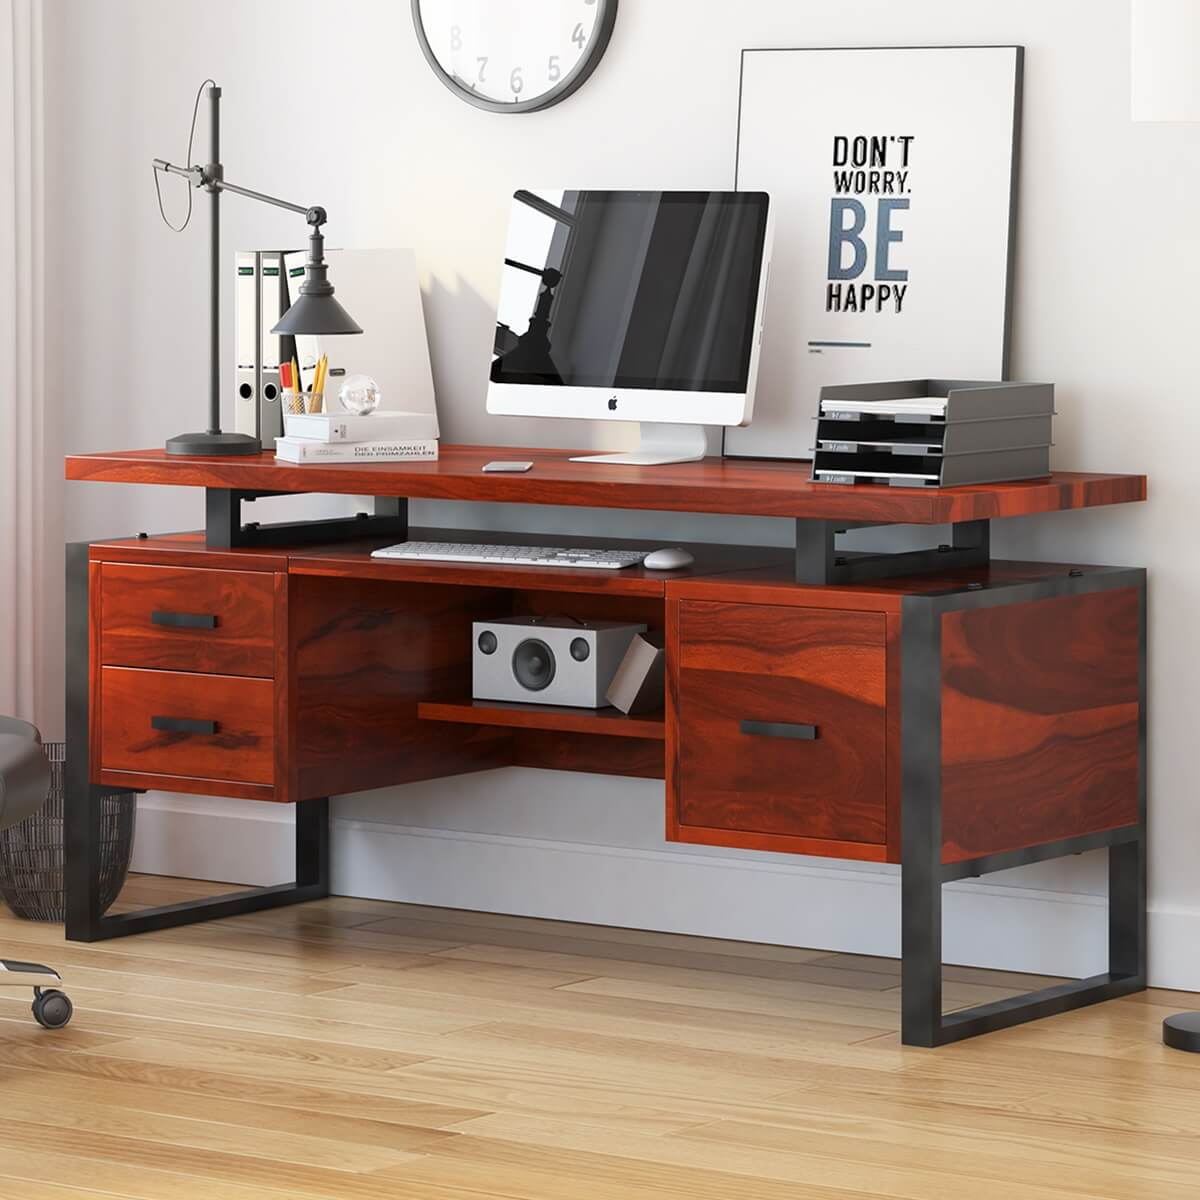 Hondah Solid Wood 64 Large Industrial Home Office Computer Desk